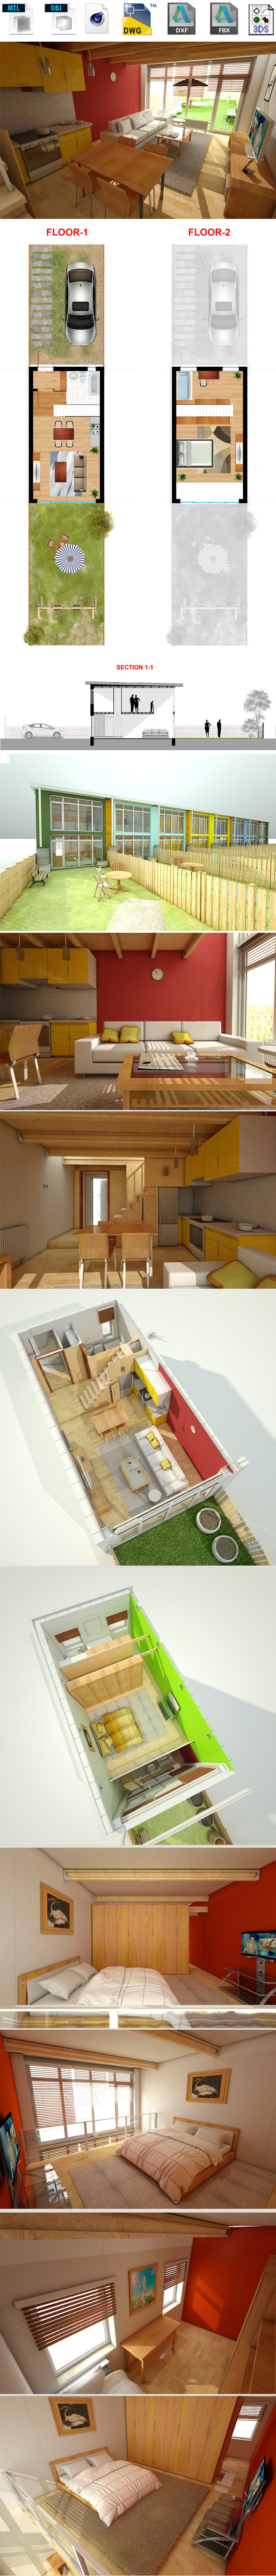 House interior, Exterior - 3DOcean Item for Sale